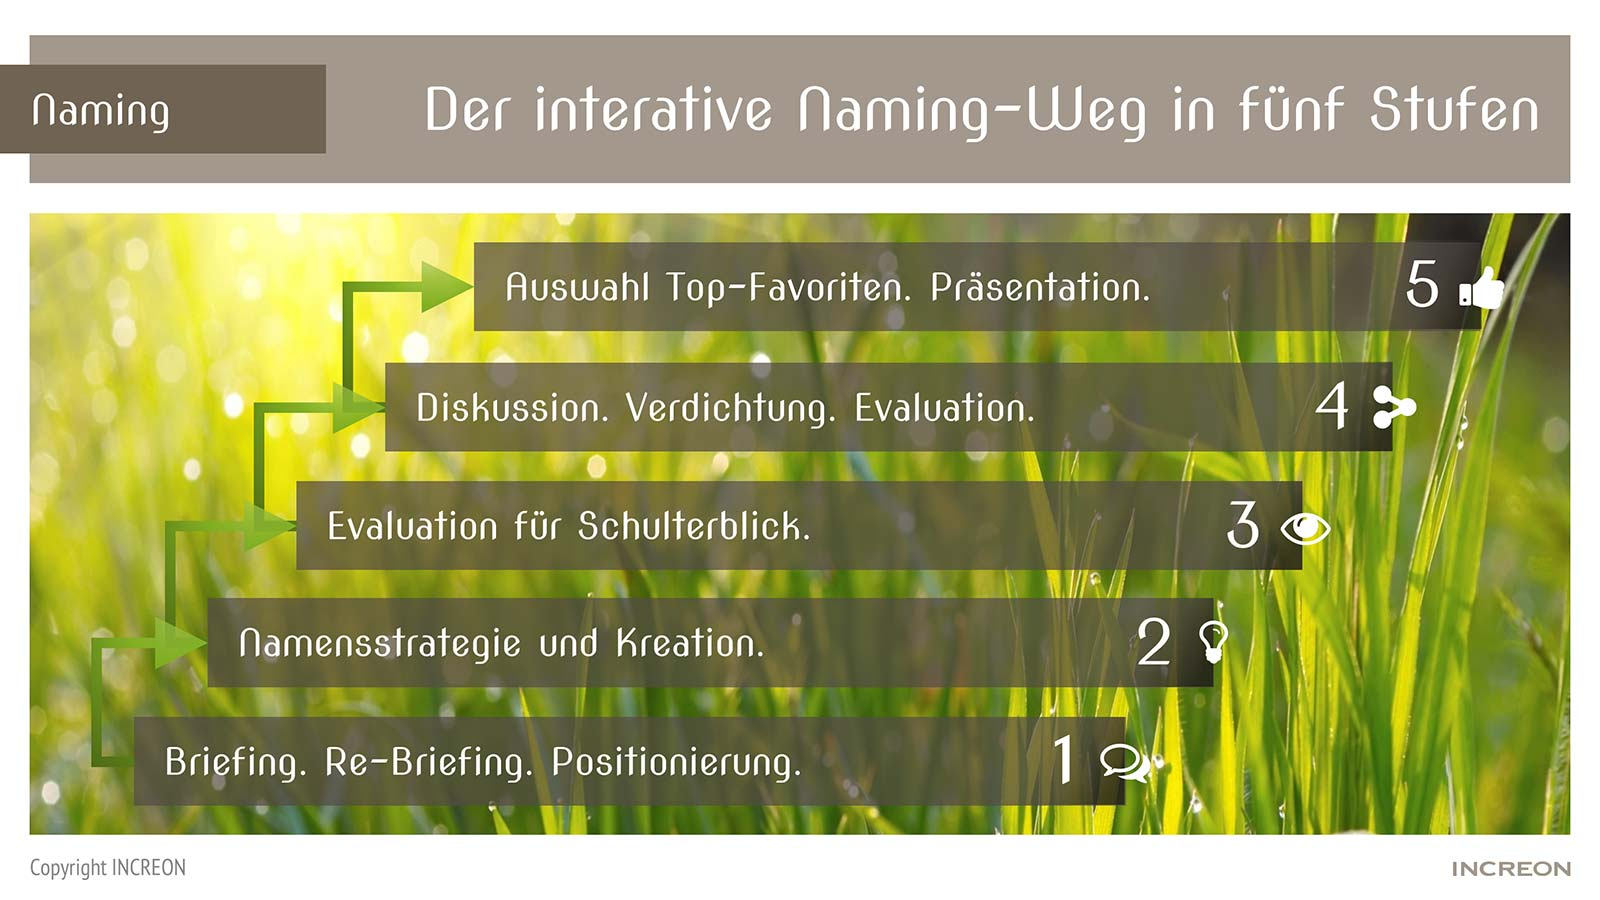 Der interative Naming-Weg in 5 Stufen von INCREON